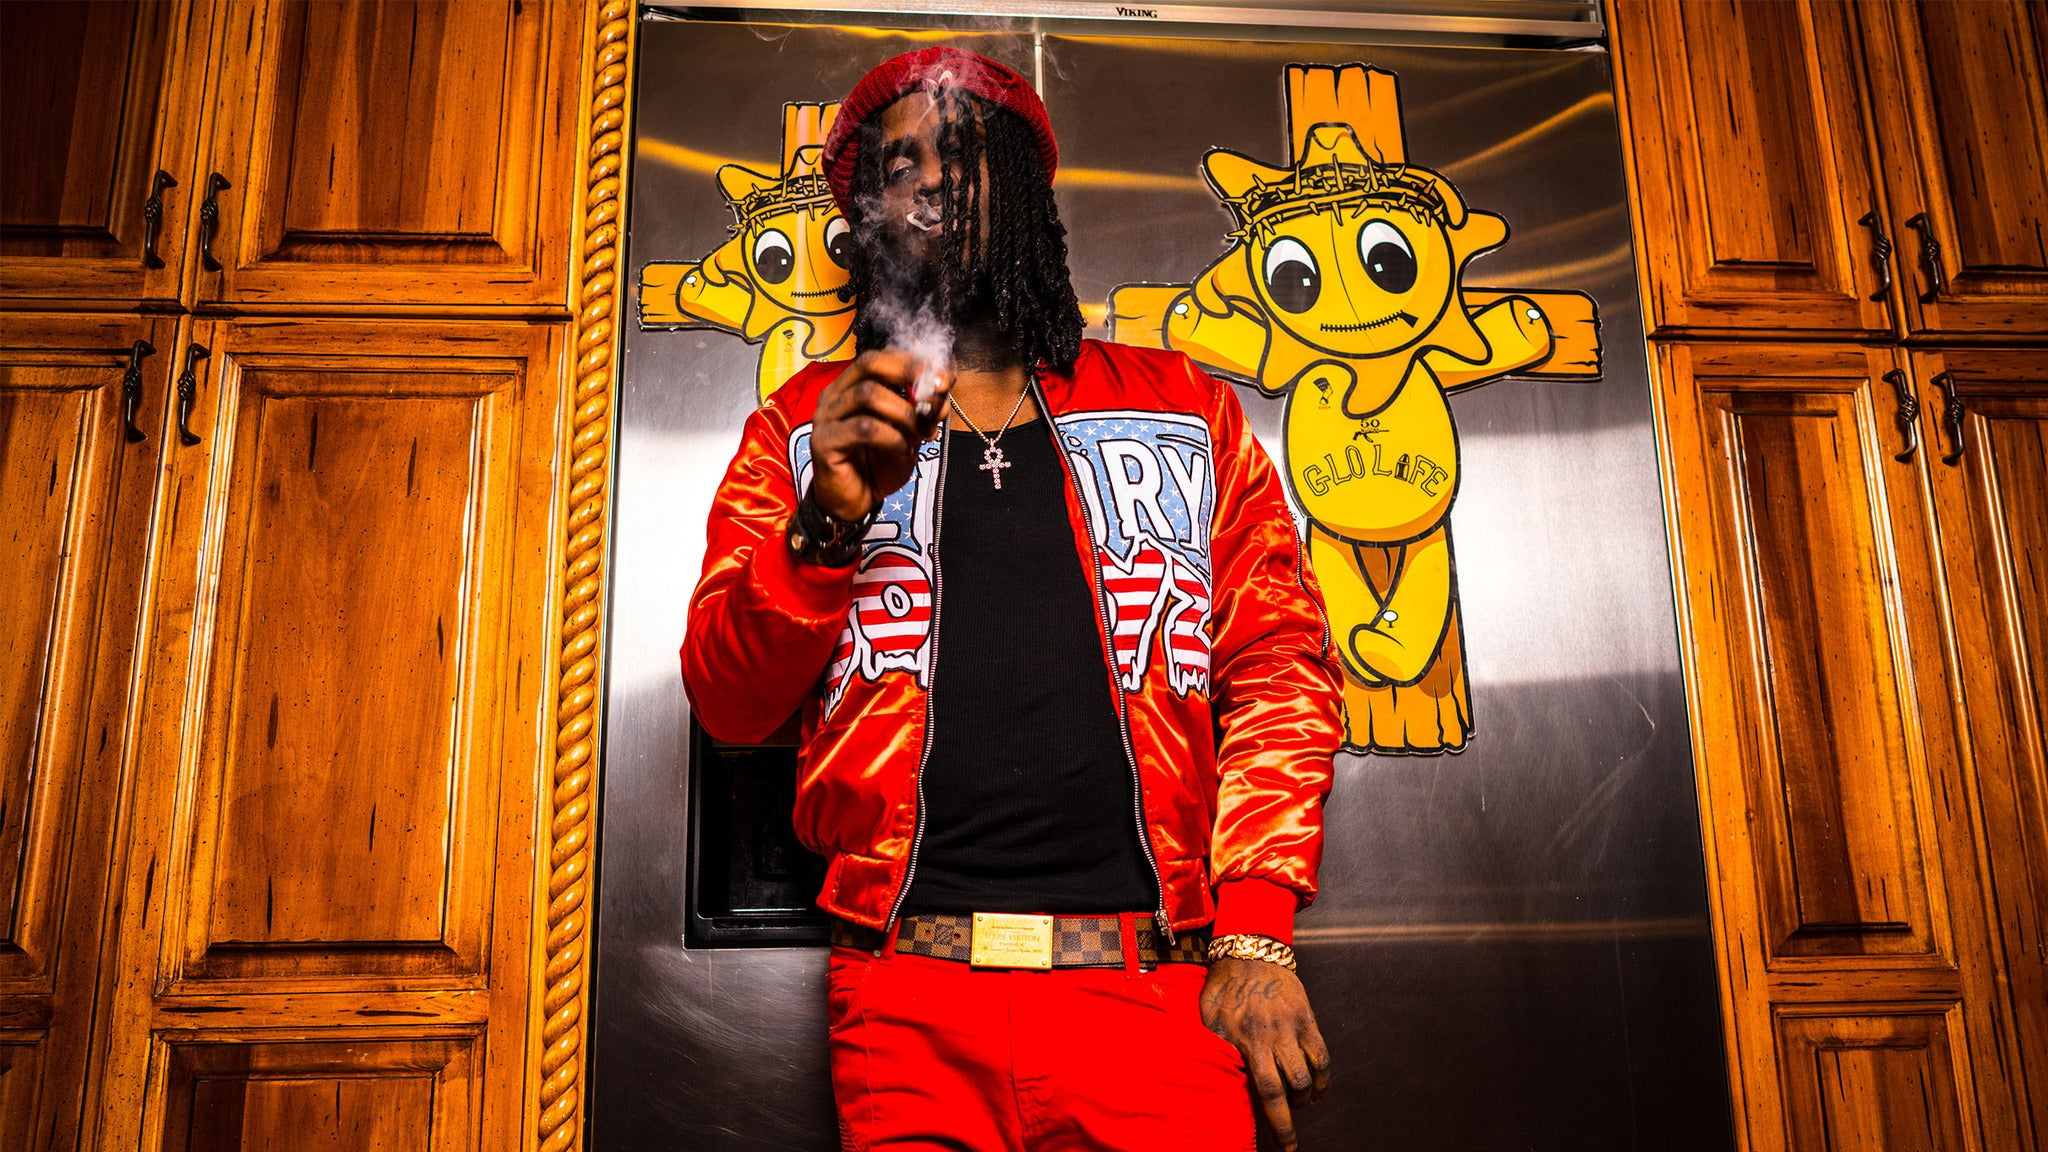 Chief Keef at Senator Theatre